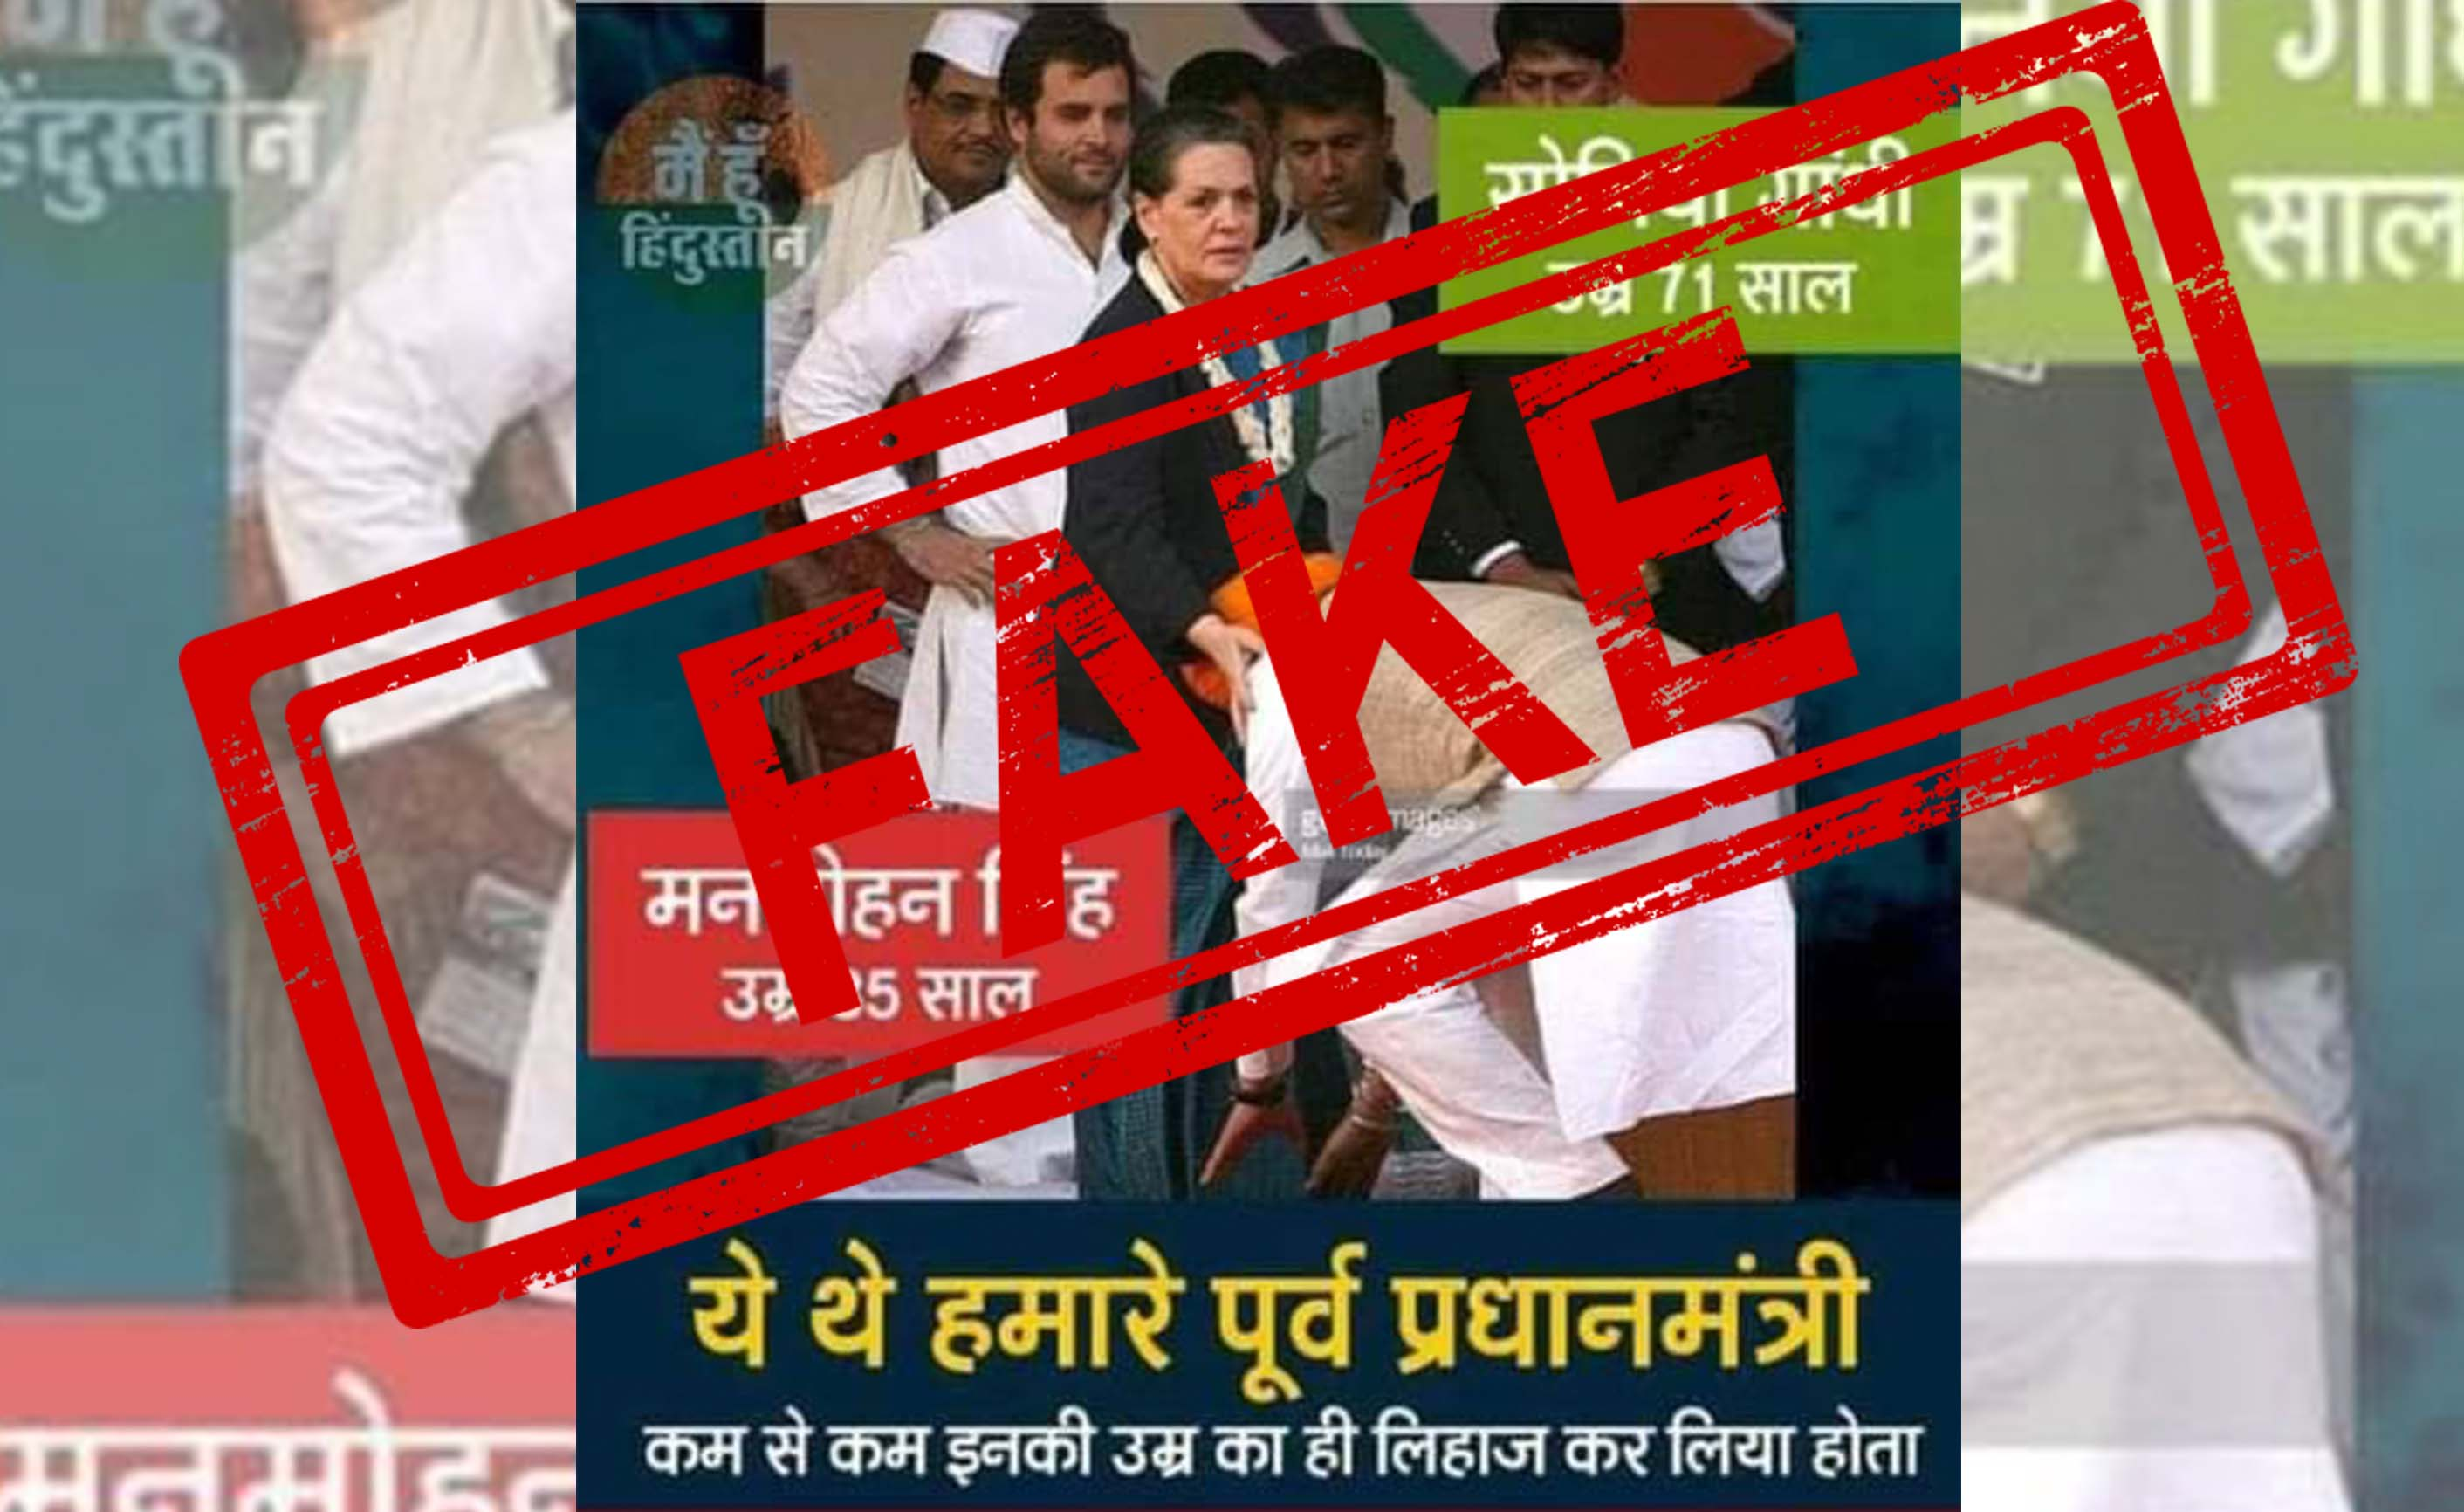 Sonia Gandhi, Manmohan Singh, Congress, FAKE, feel, NewsMobile, Mobile, News, India, Fake, News, Fact Check, Fact Checker